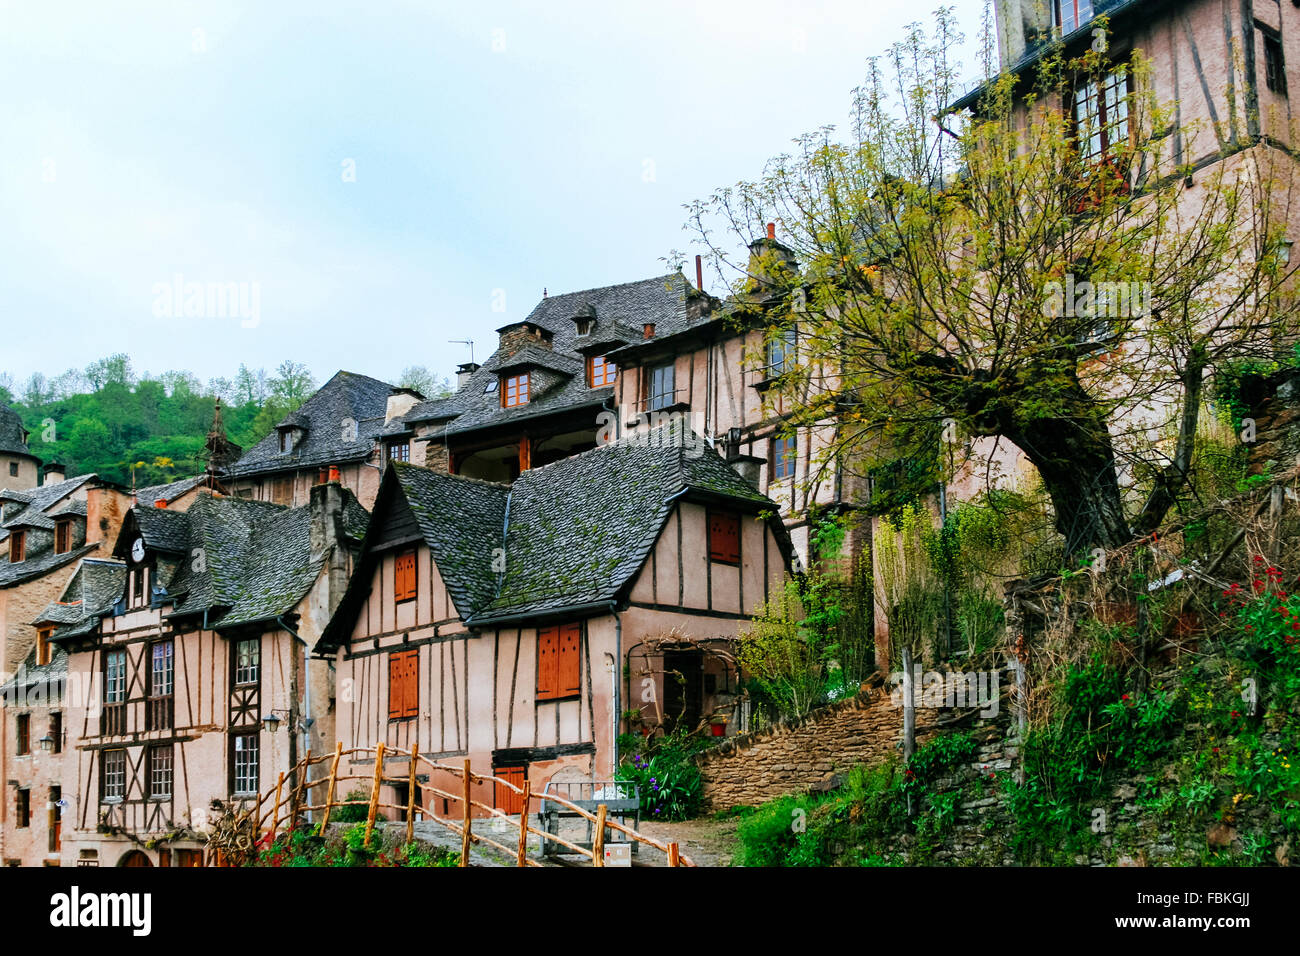 Conques, France, part of the Camino de Compostela - Stock Image